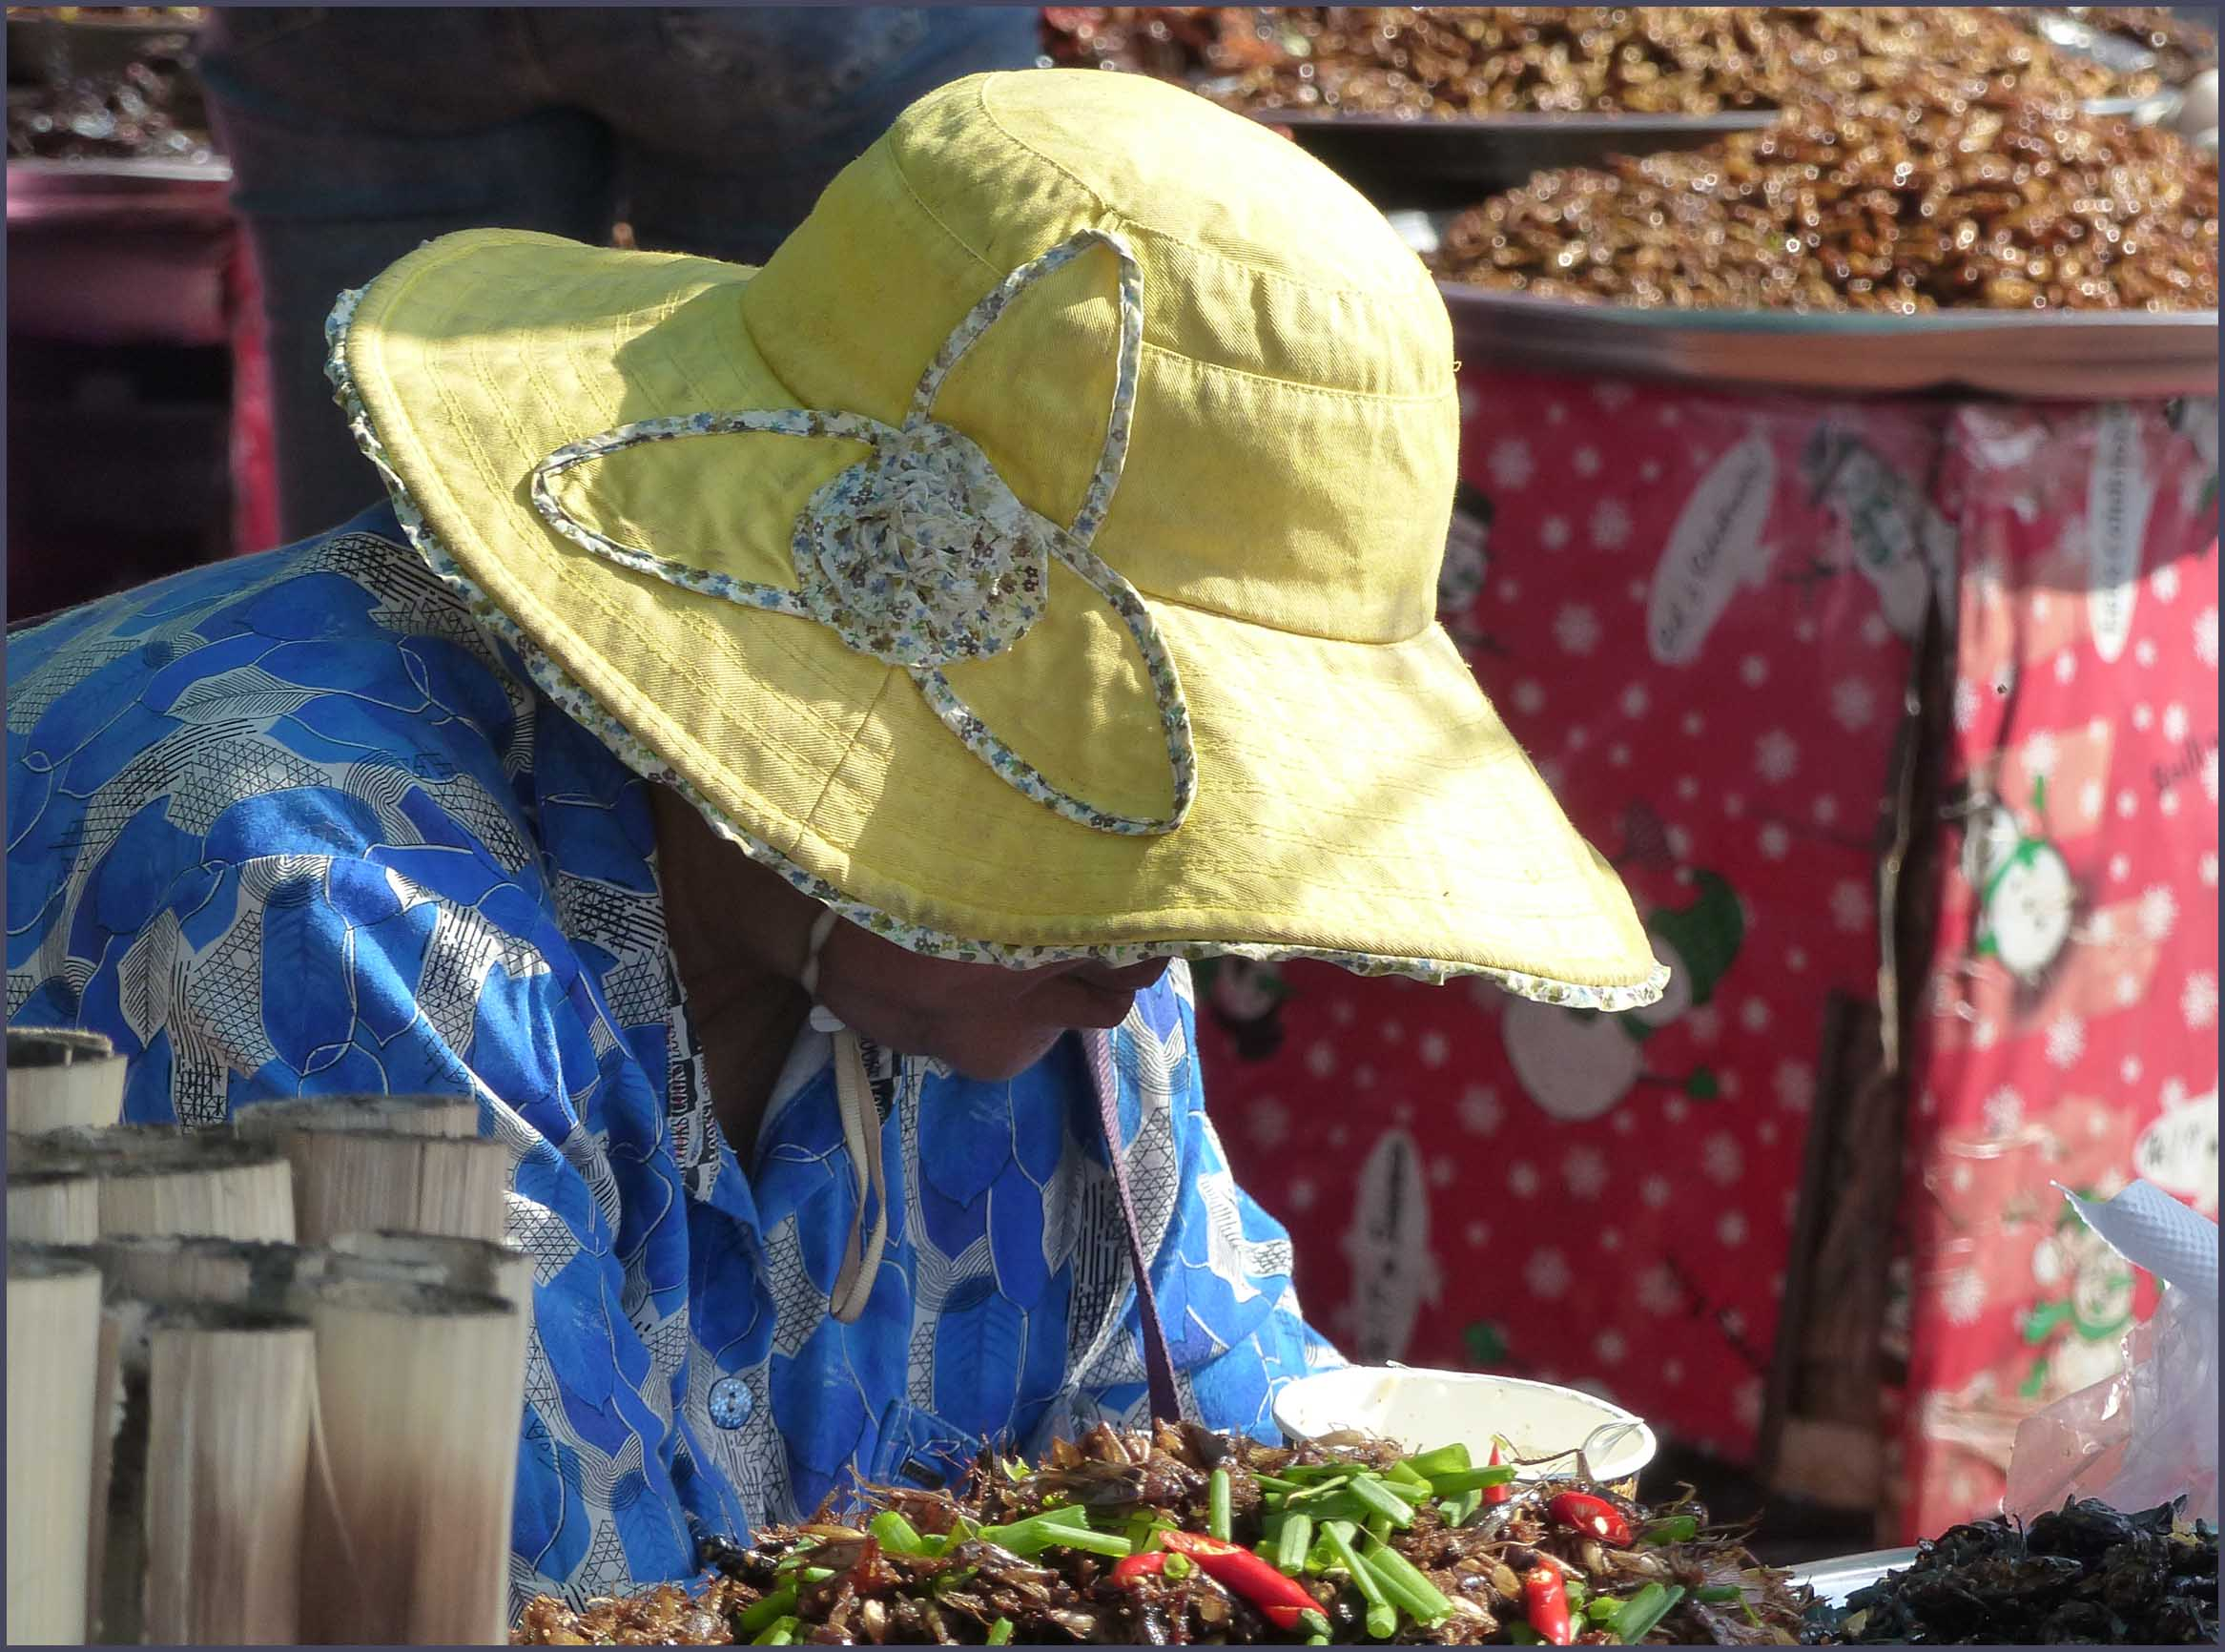 Lady in yellow sunhat at a market stall